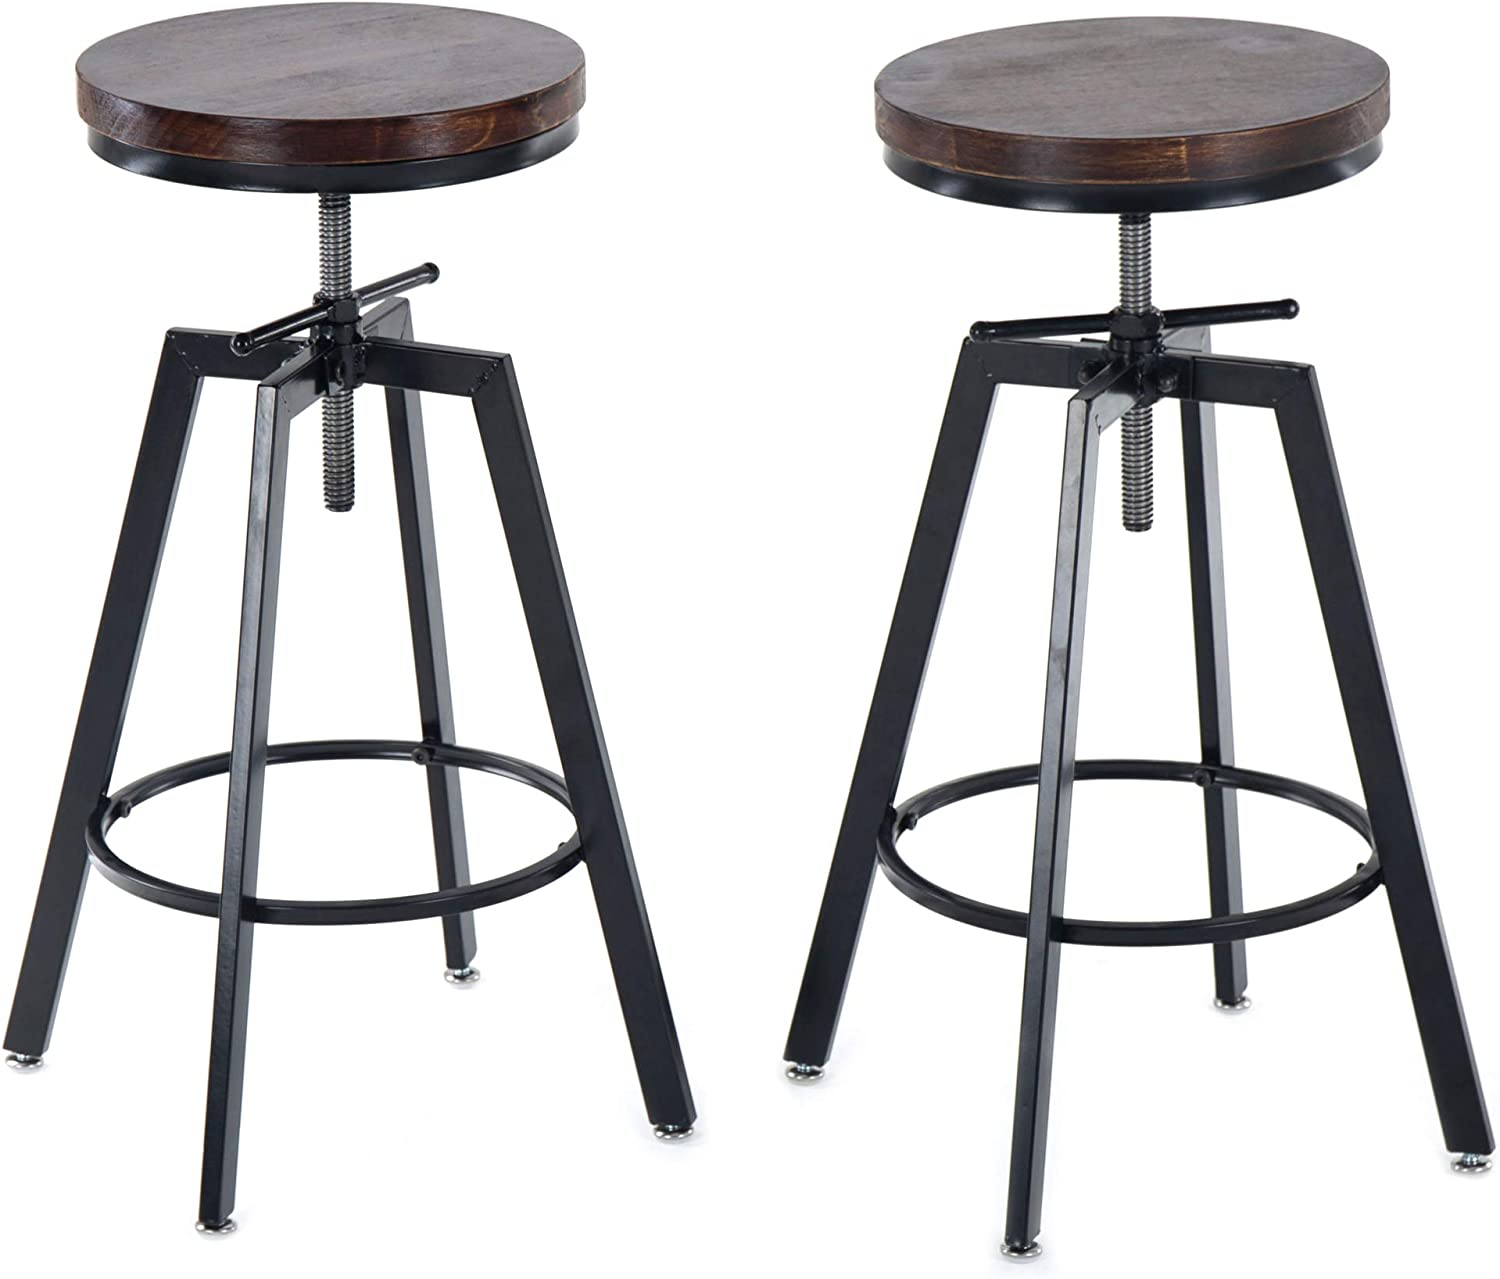 JOELGIUM Adjustable Height Swivel Bar Stools – Counter Height – Set of 2 Solid Wood Seat Metal Base for Kitchen,Bistro,Coffee,Pub